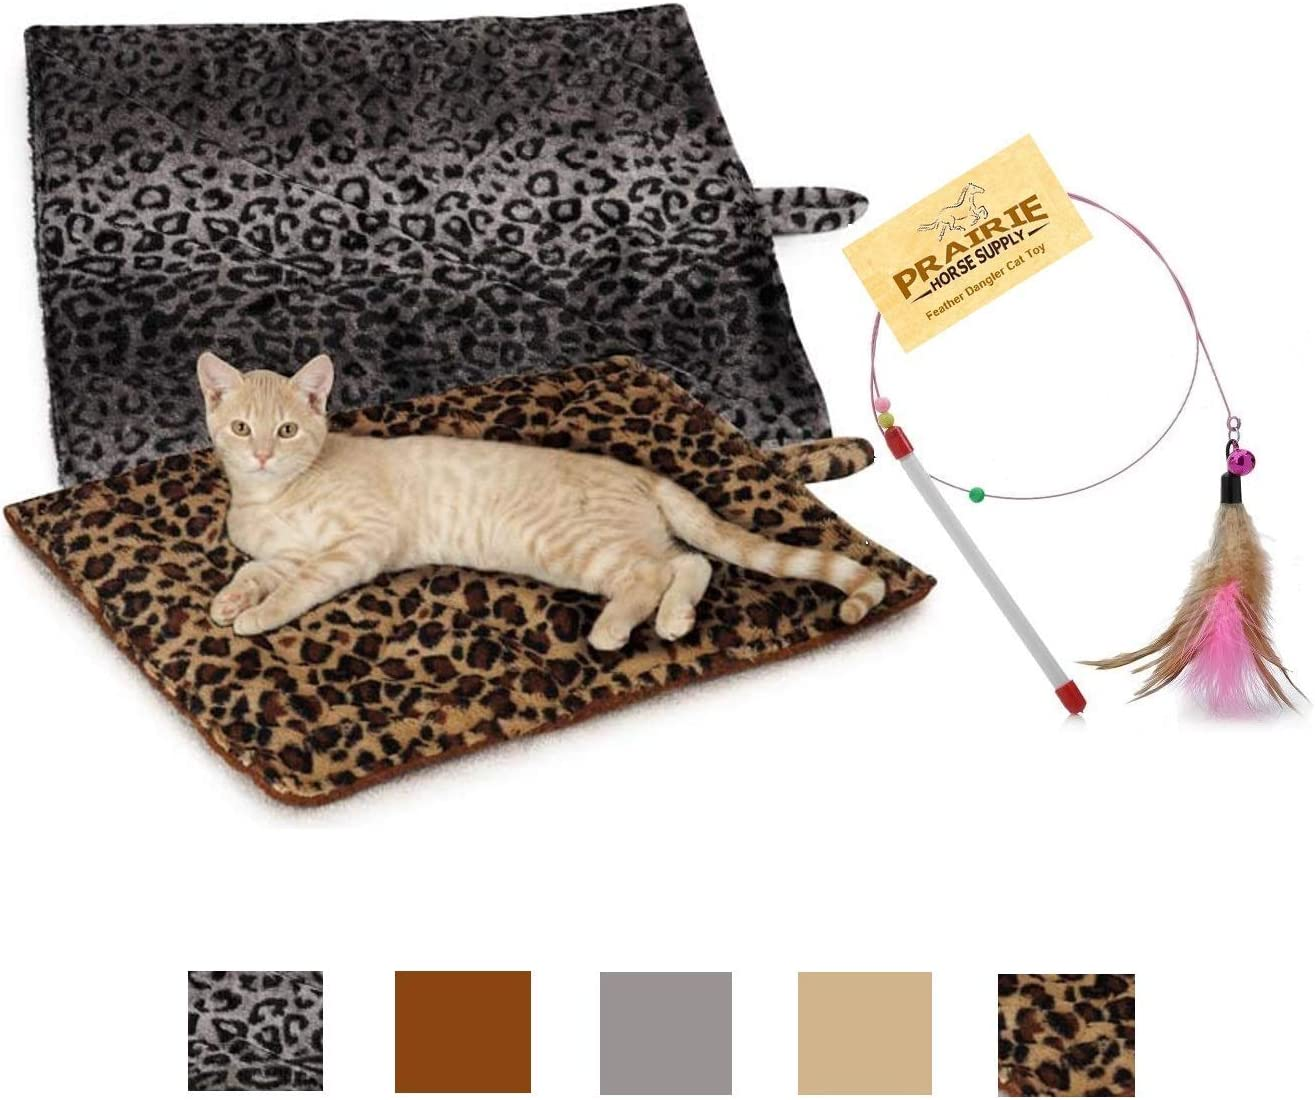 Quality Thermal Cat Mat and Free Cat Toy (Assorted Colors) (1, 2, 3, or 4 Mats) Cozy Self Heating Warming Kitty Kitten Puppy Small Dog Bed, Reversible Washable Pad, No Electricity